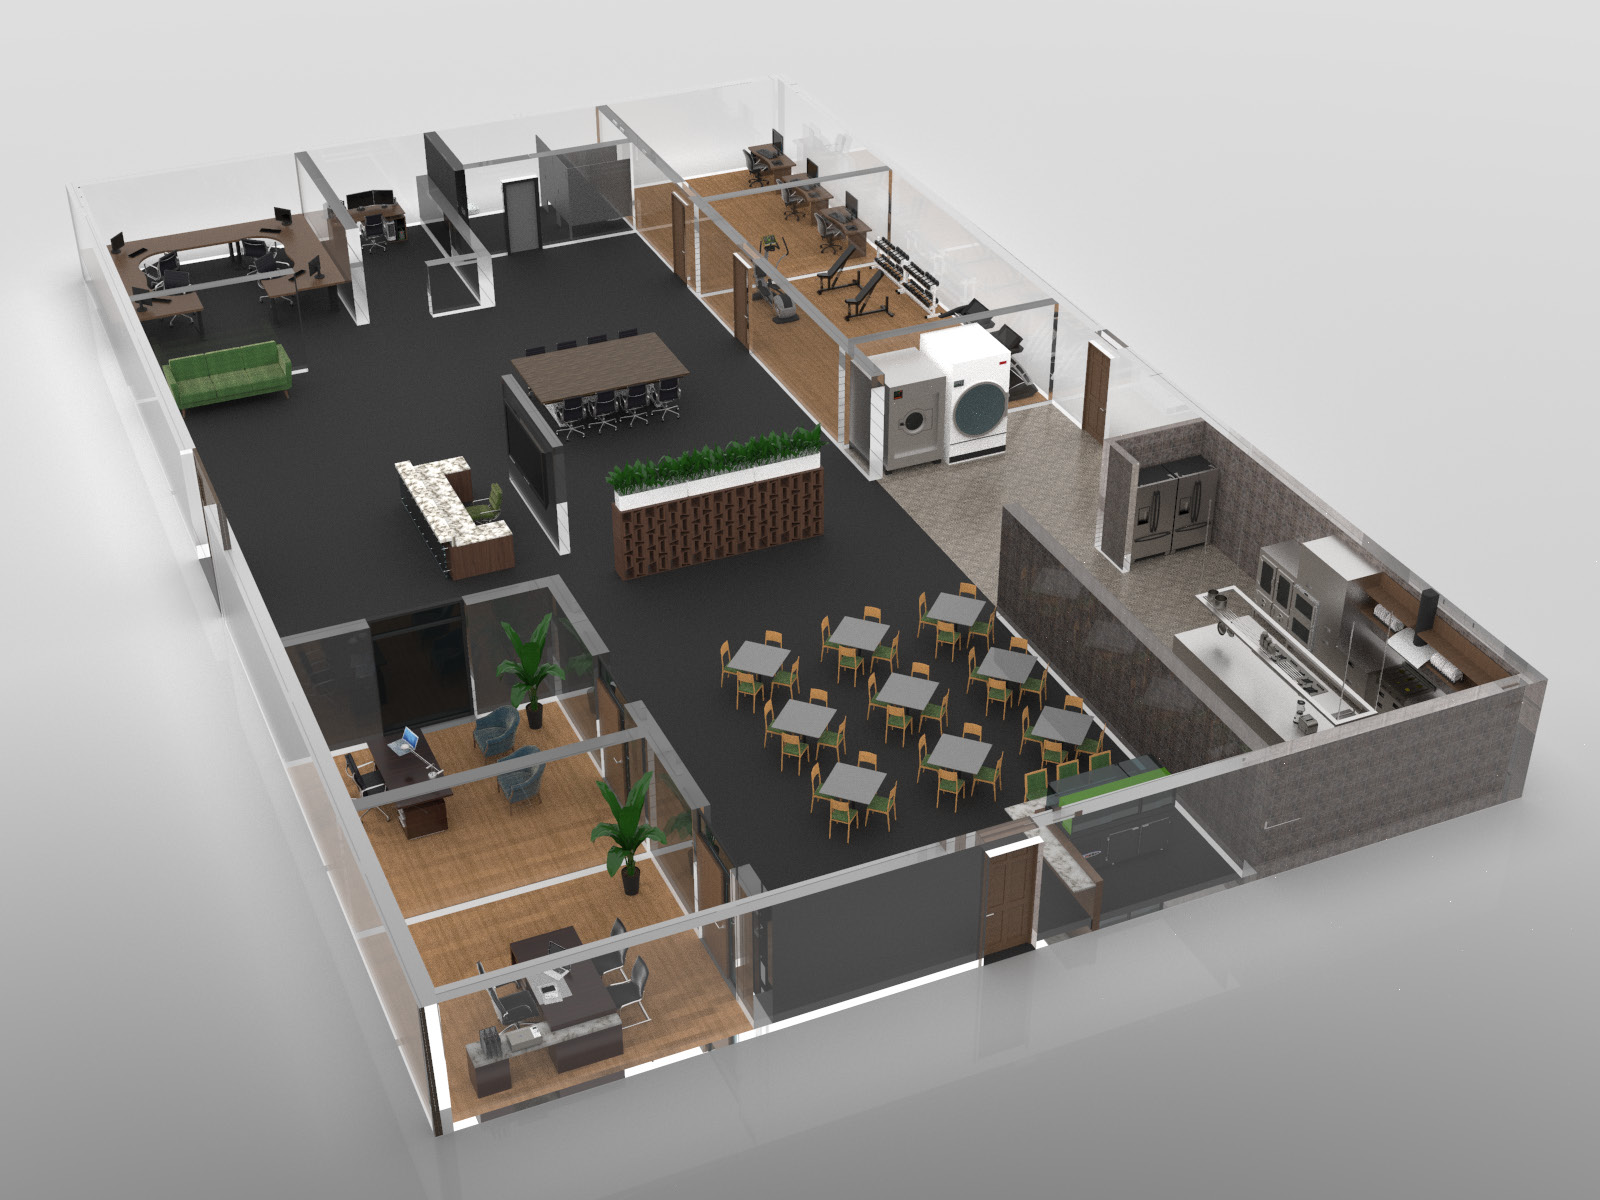 3d rendering showing the inside of the Our Place of Hope Clubhouse